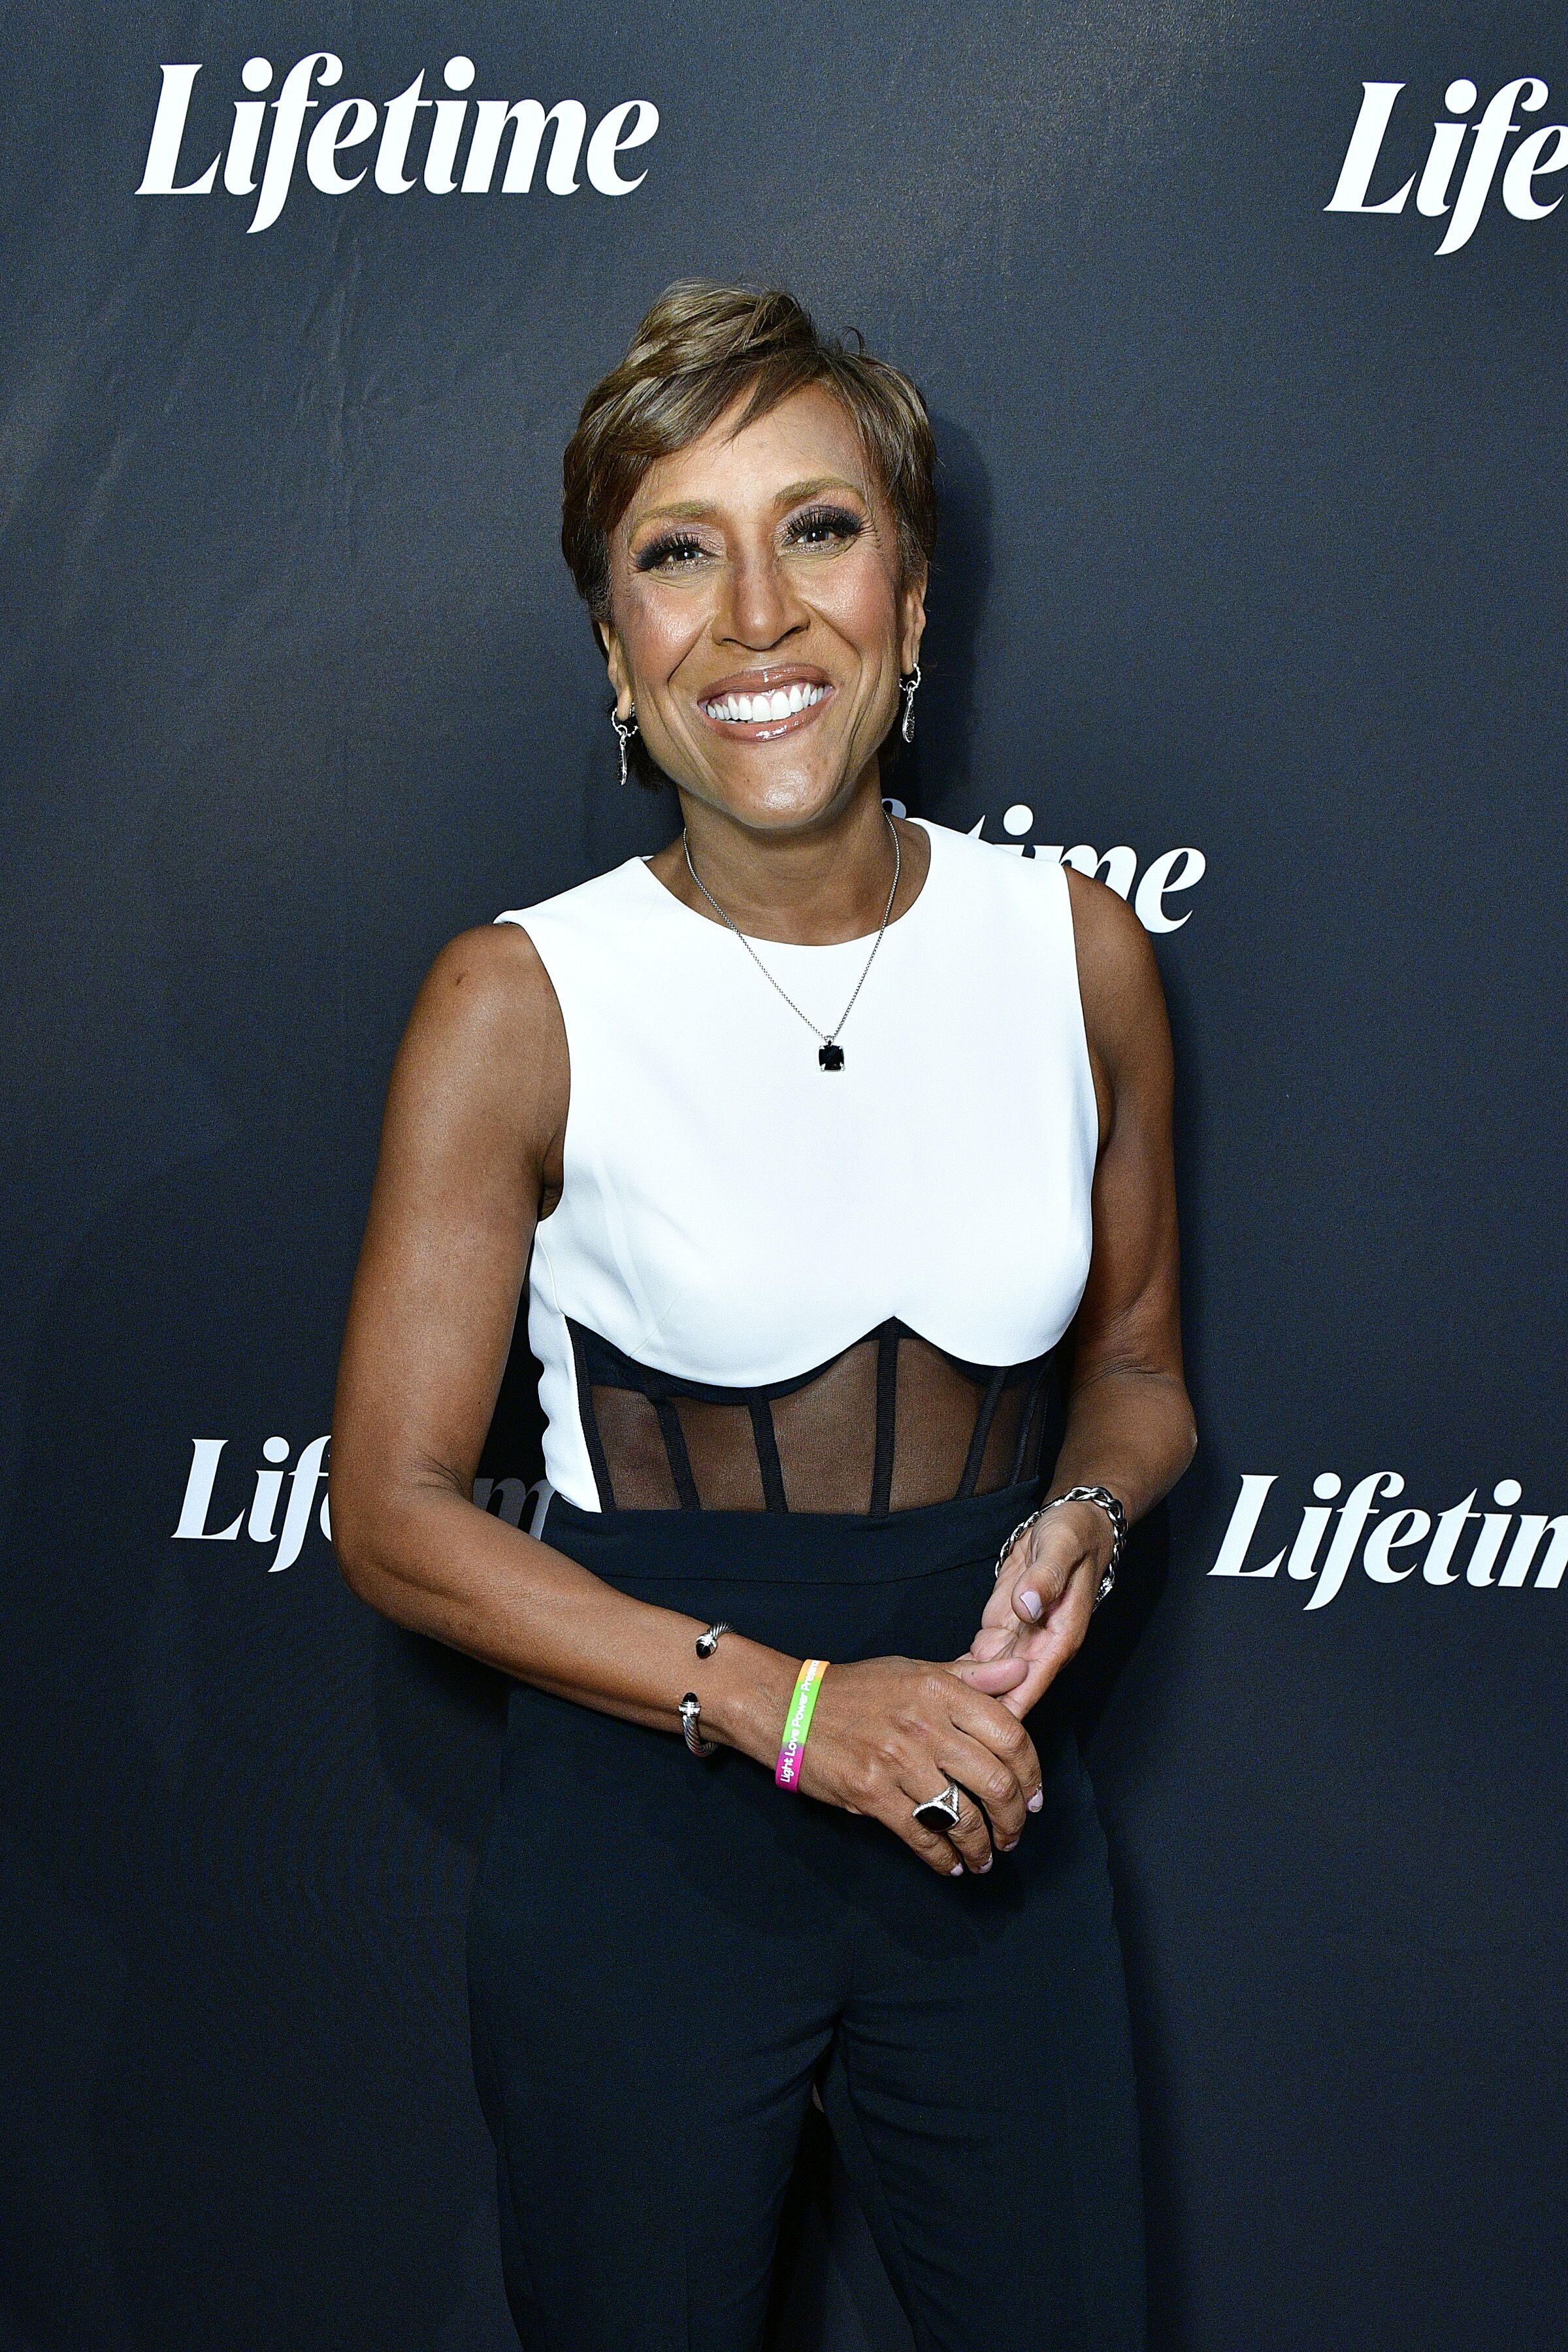 """Robin Roberts at the """"Robin Roberts Presents"""" Lifetime premiere at the Paley Center for Media in January 2020 